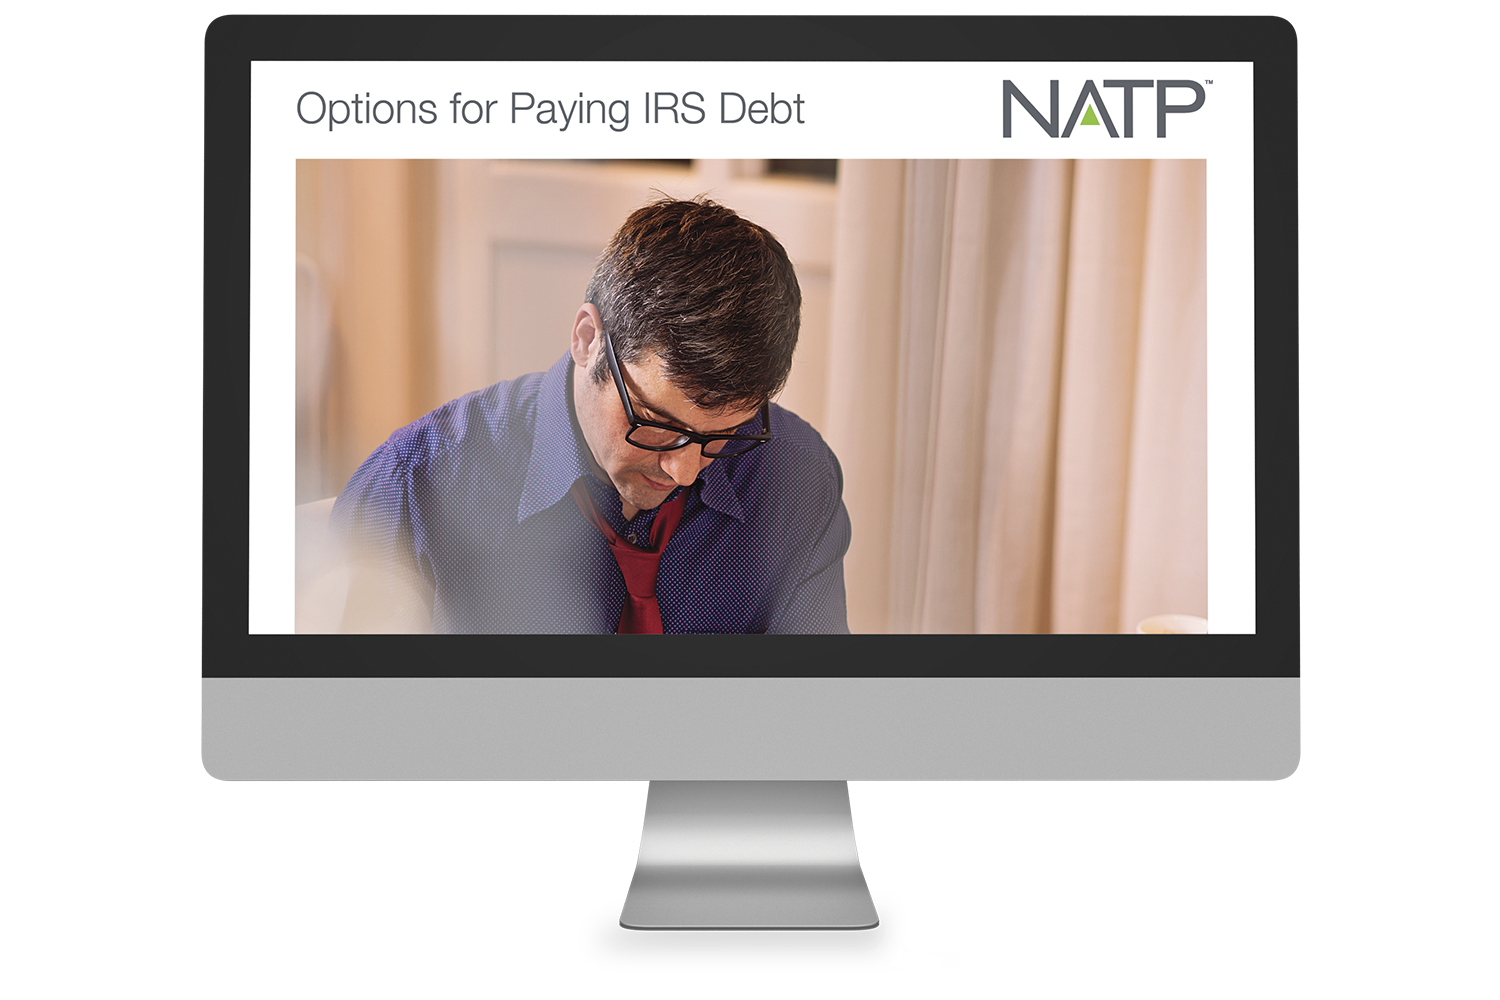 Options for Paying IRS Debt Textbook (2017) – Electronic PDF Version - #E4717